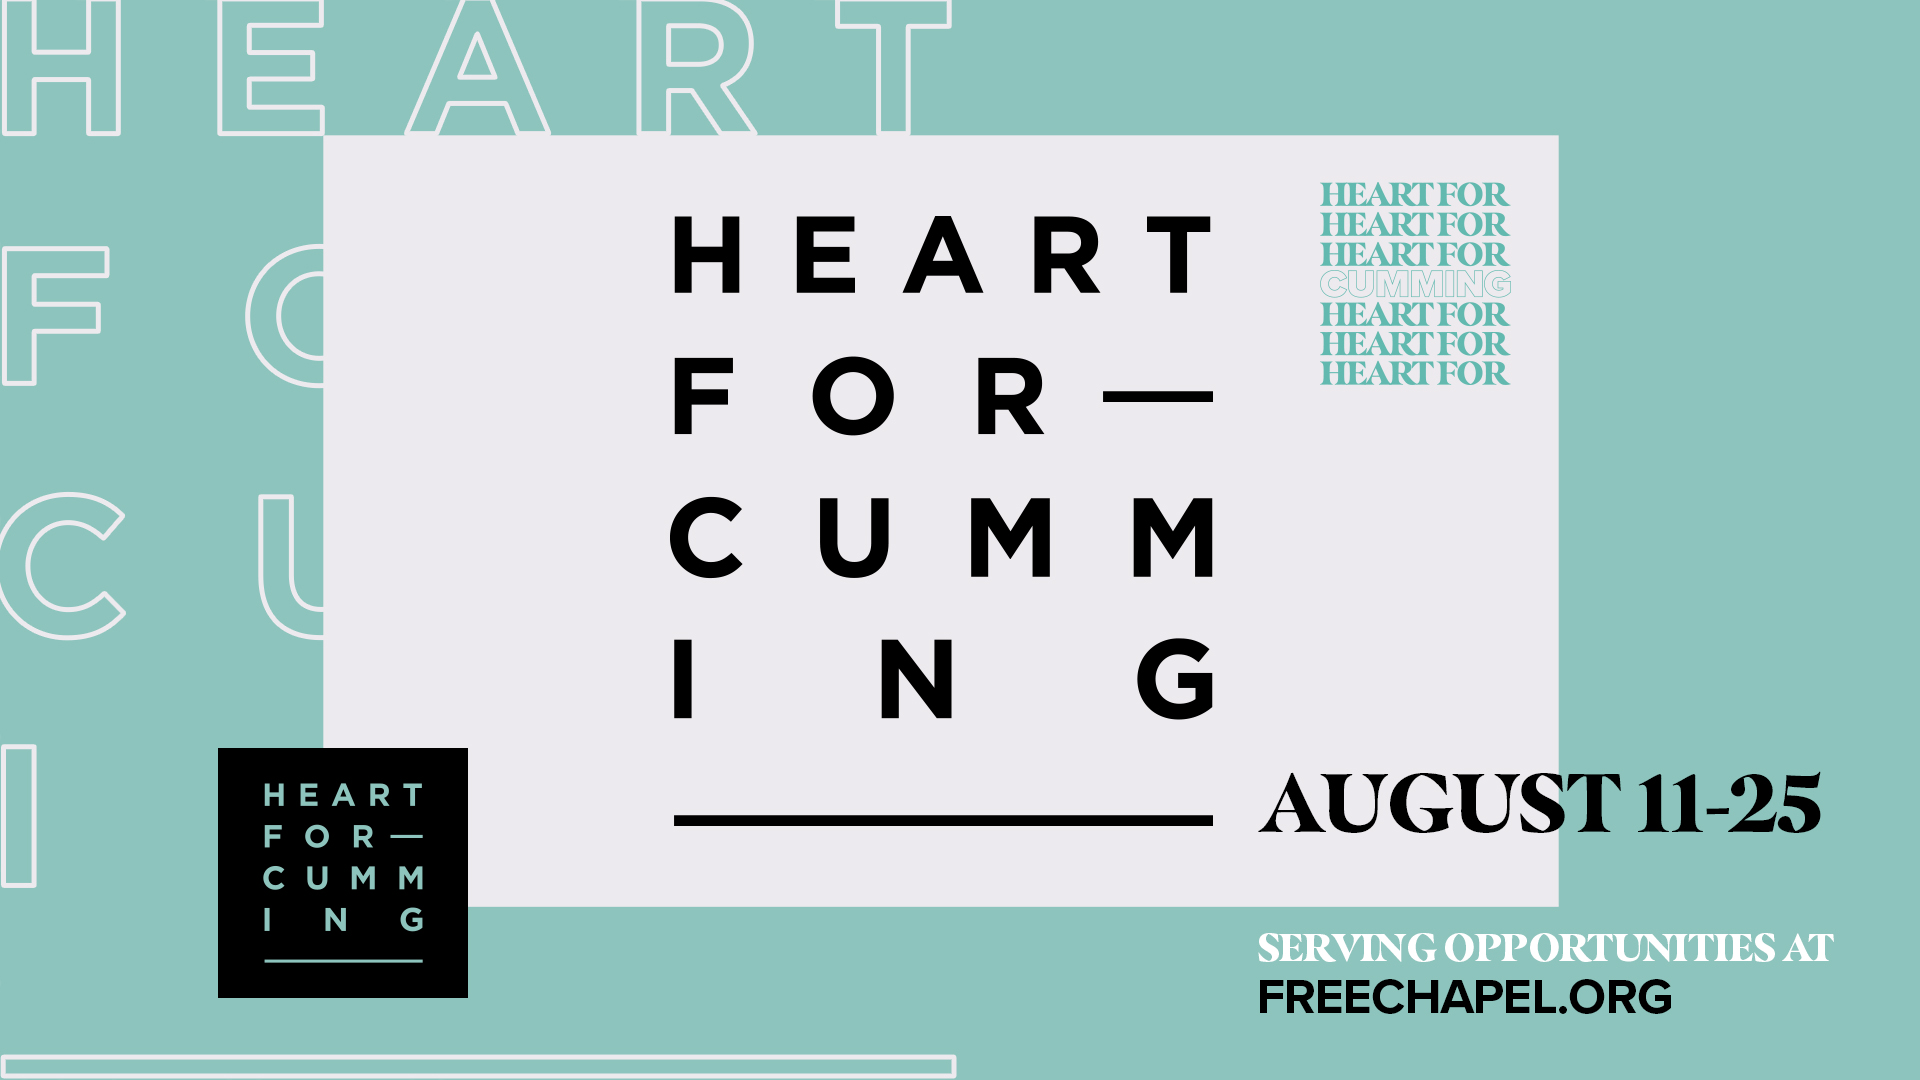 Heart For Cumming at the Cumming campus